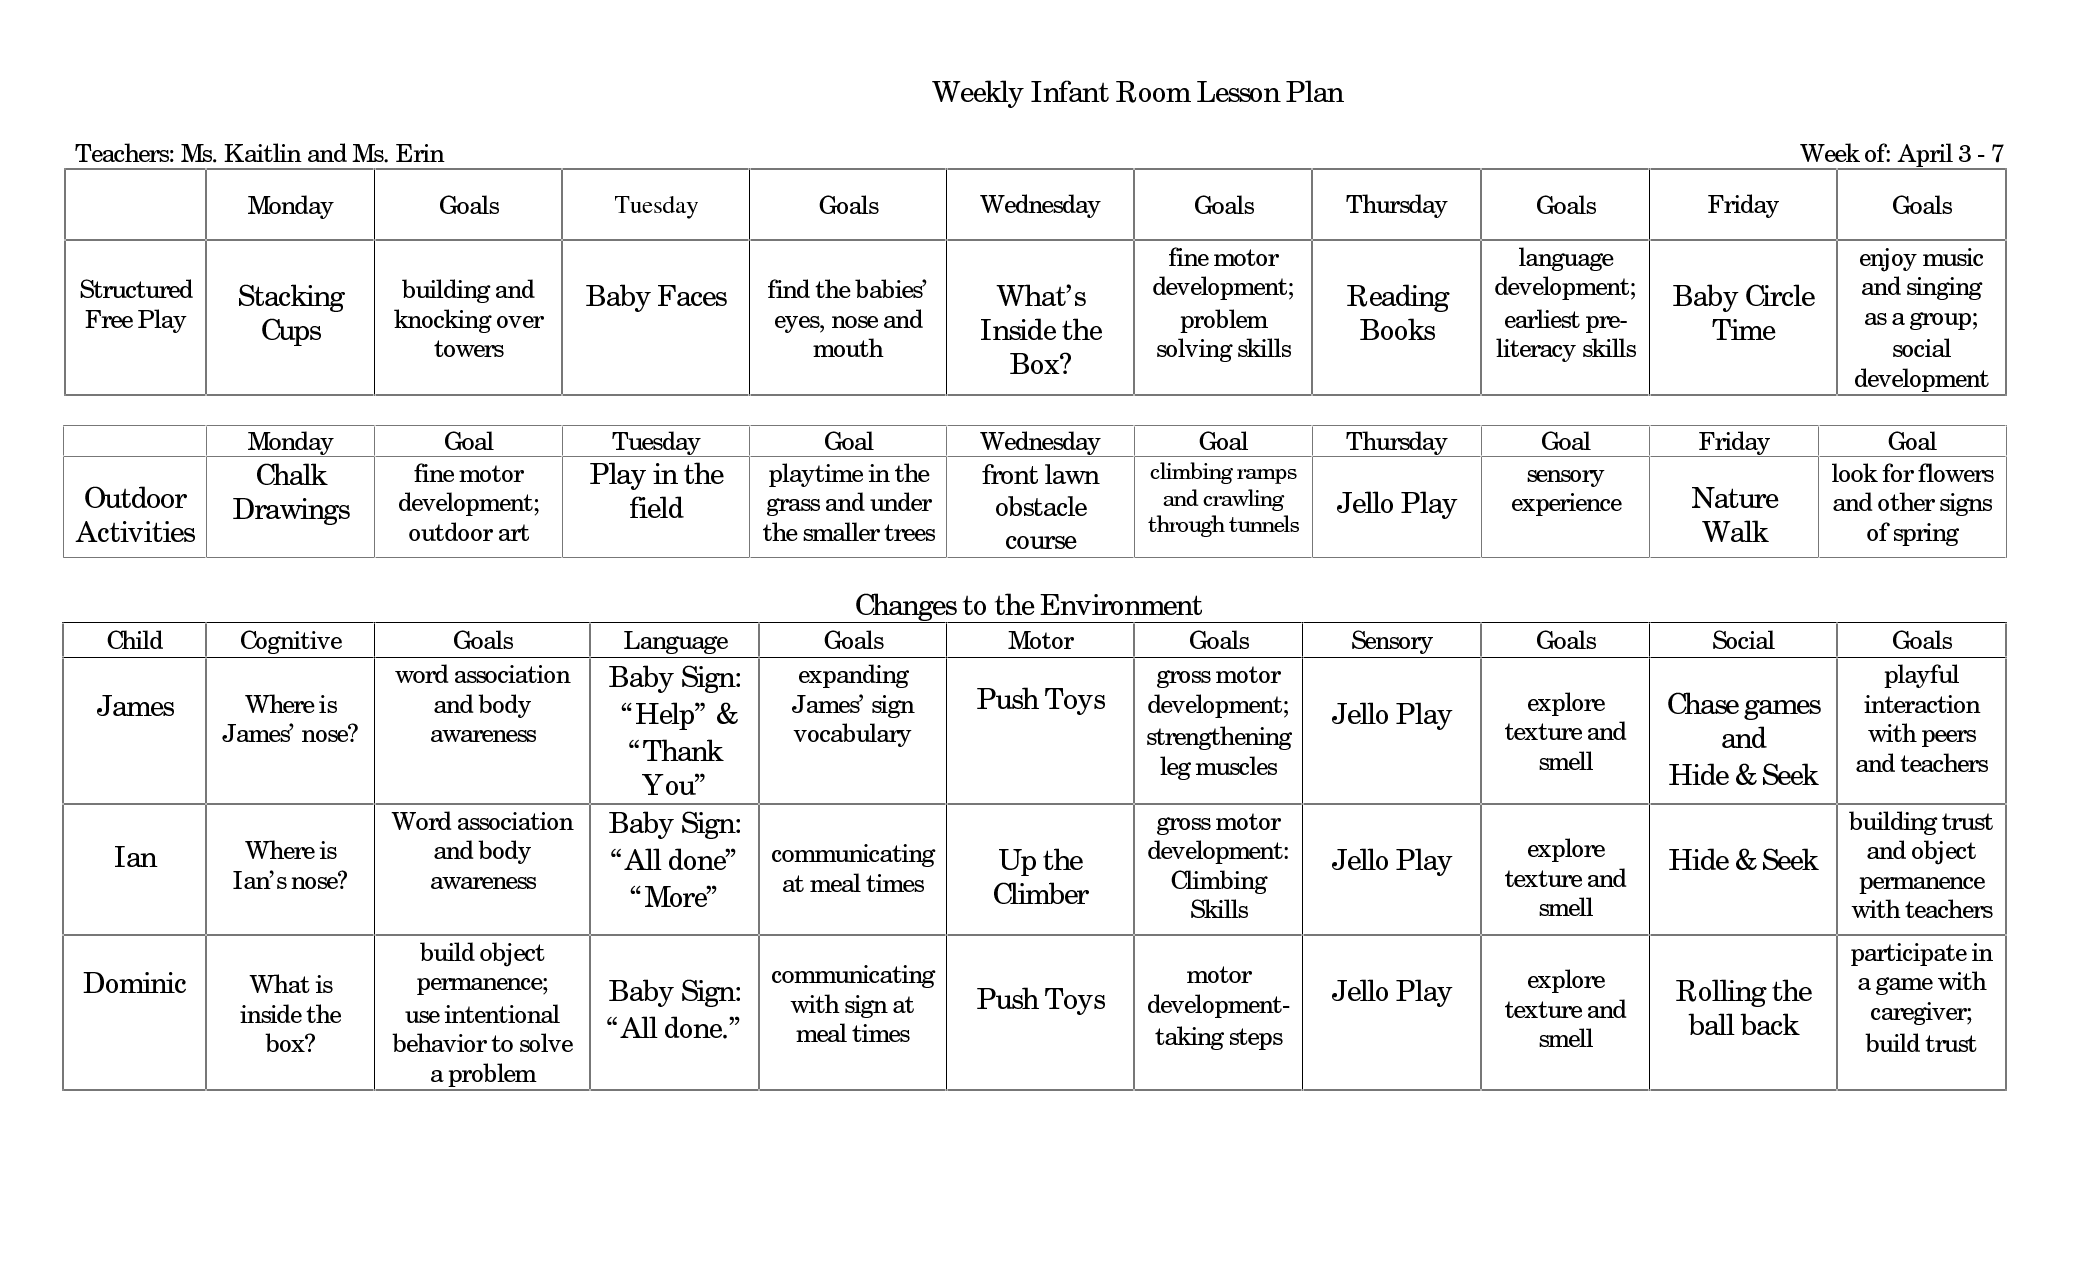 Blank Lesson Plan Template  Infants  Sample Weekly Lesson Plan